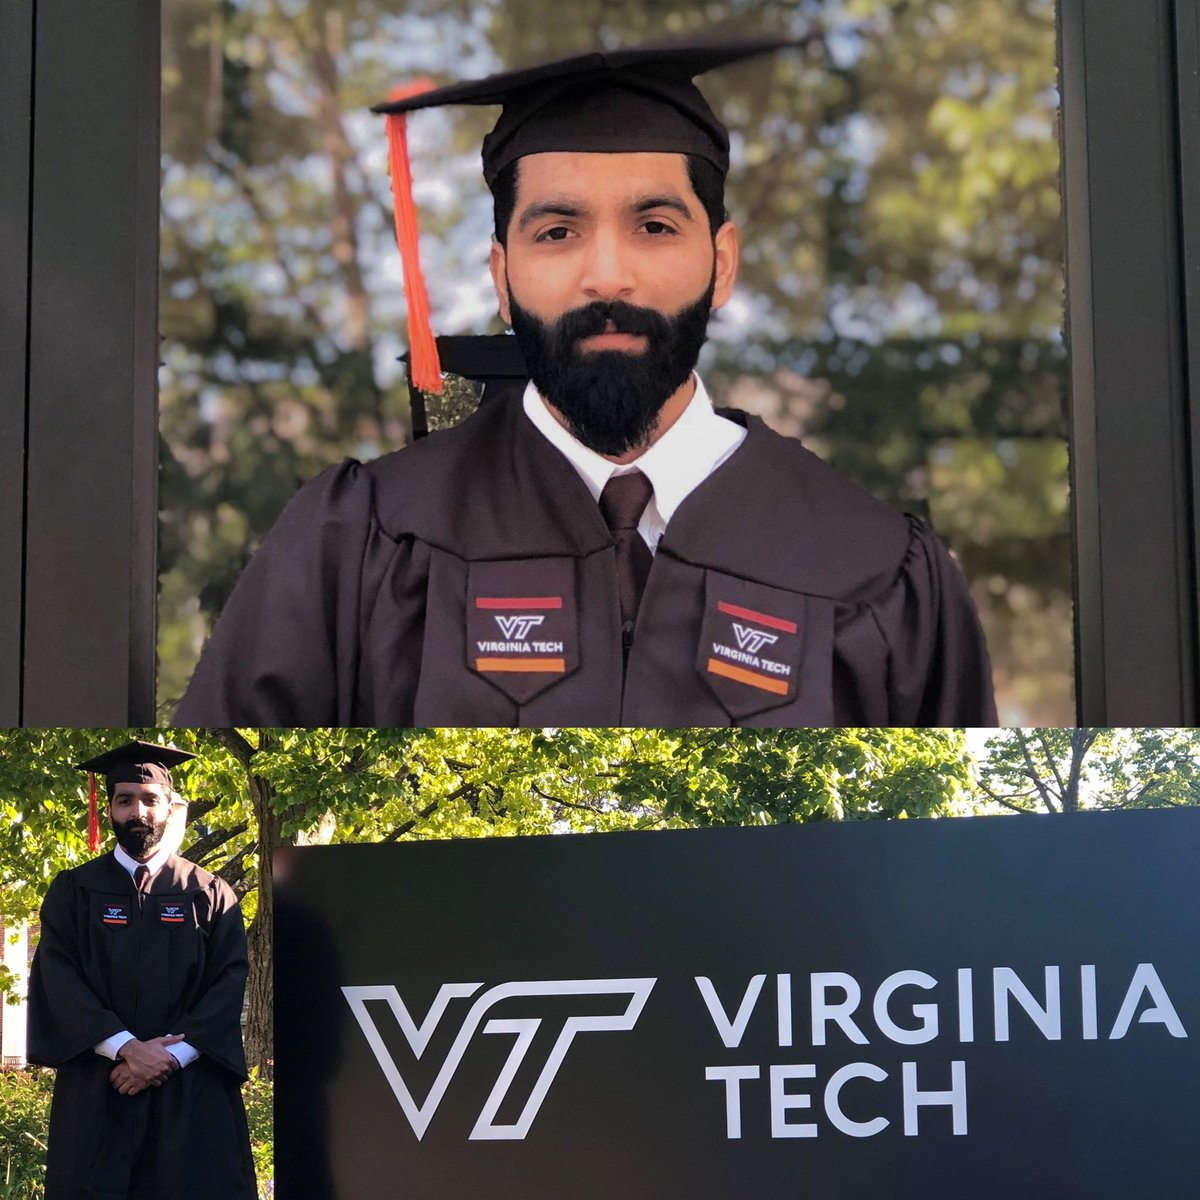 VT First-Gen Graduate Spotlight:  Today, @vt1stgen celebrates Senior Muhammad Awais, a Mechanical Engineering major, on his graduation! We are very proud of you, Muhammad! Congratulations on your exciting next chapter! 🎉🎉 #VTFirstGenGraduate #CelebrateFirstGen